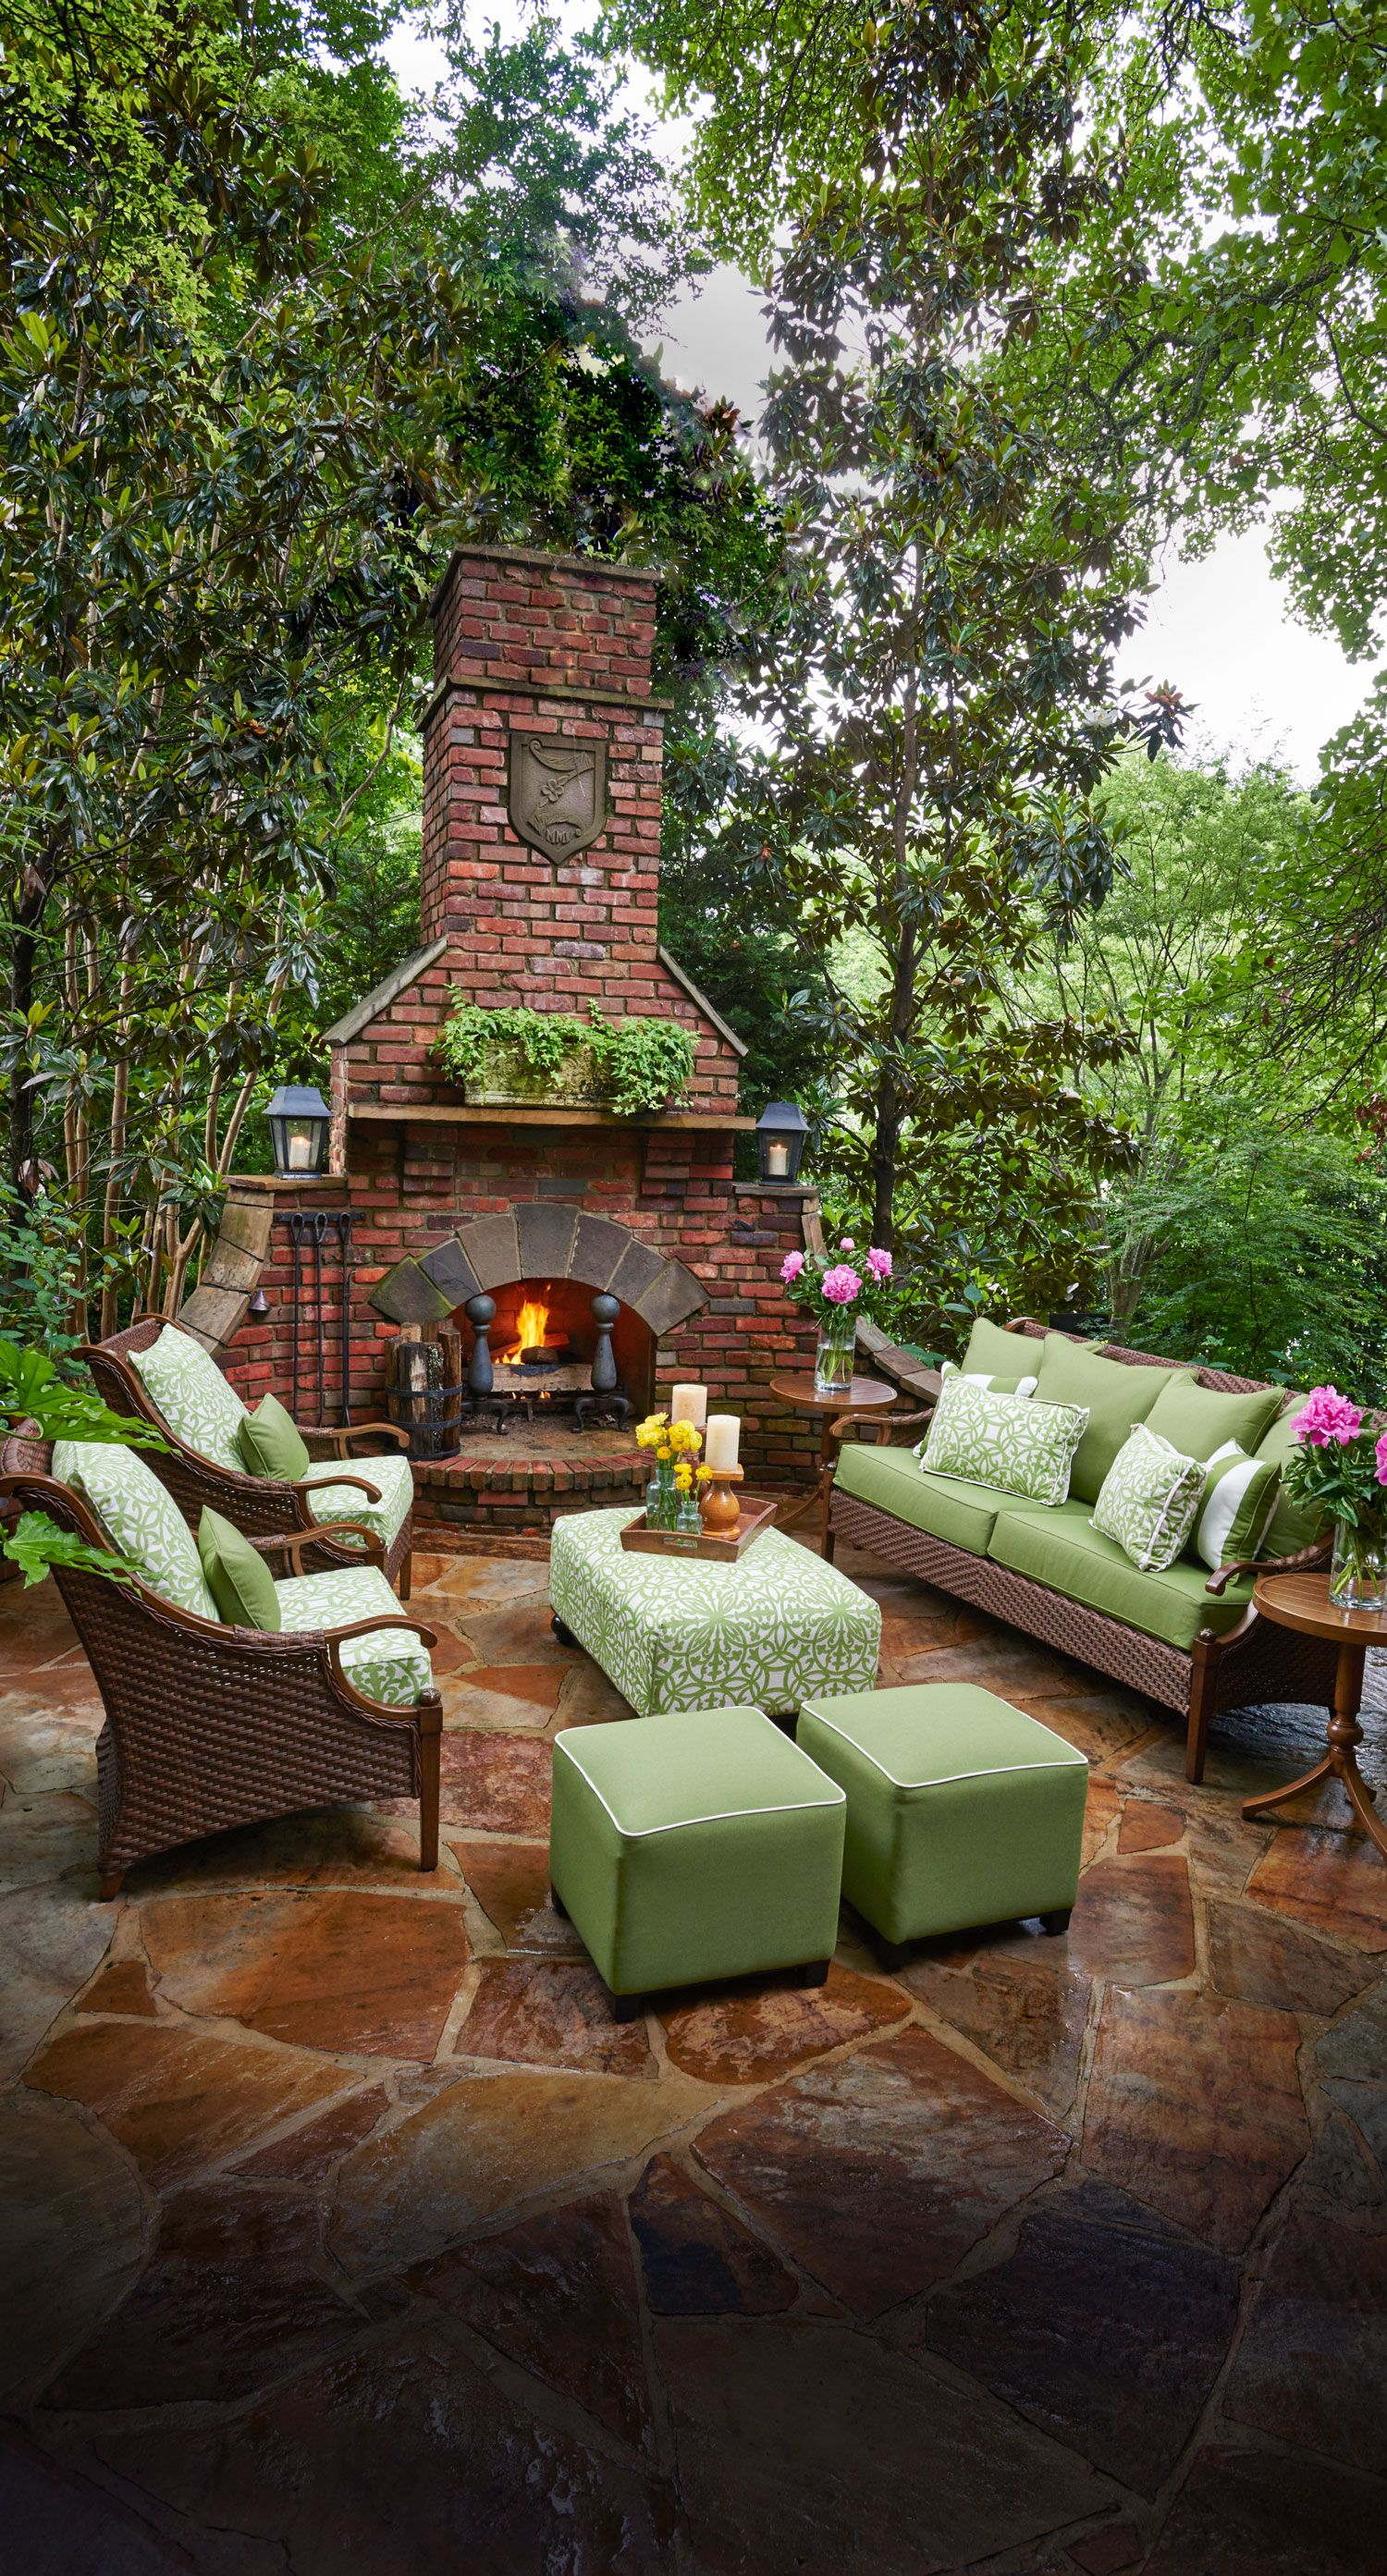 cozy outdoor living space outdoorliving homechanneltv com on